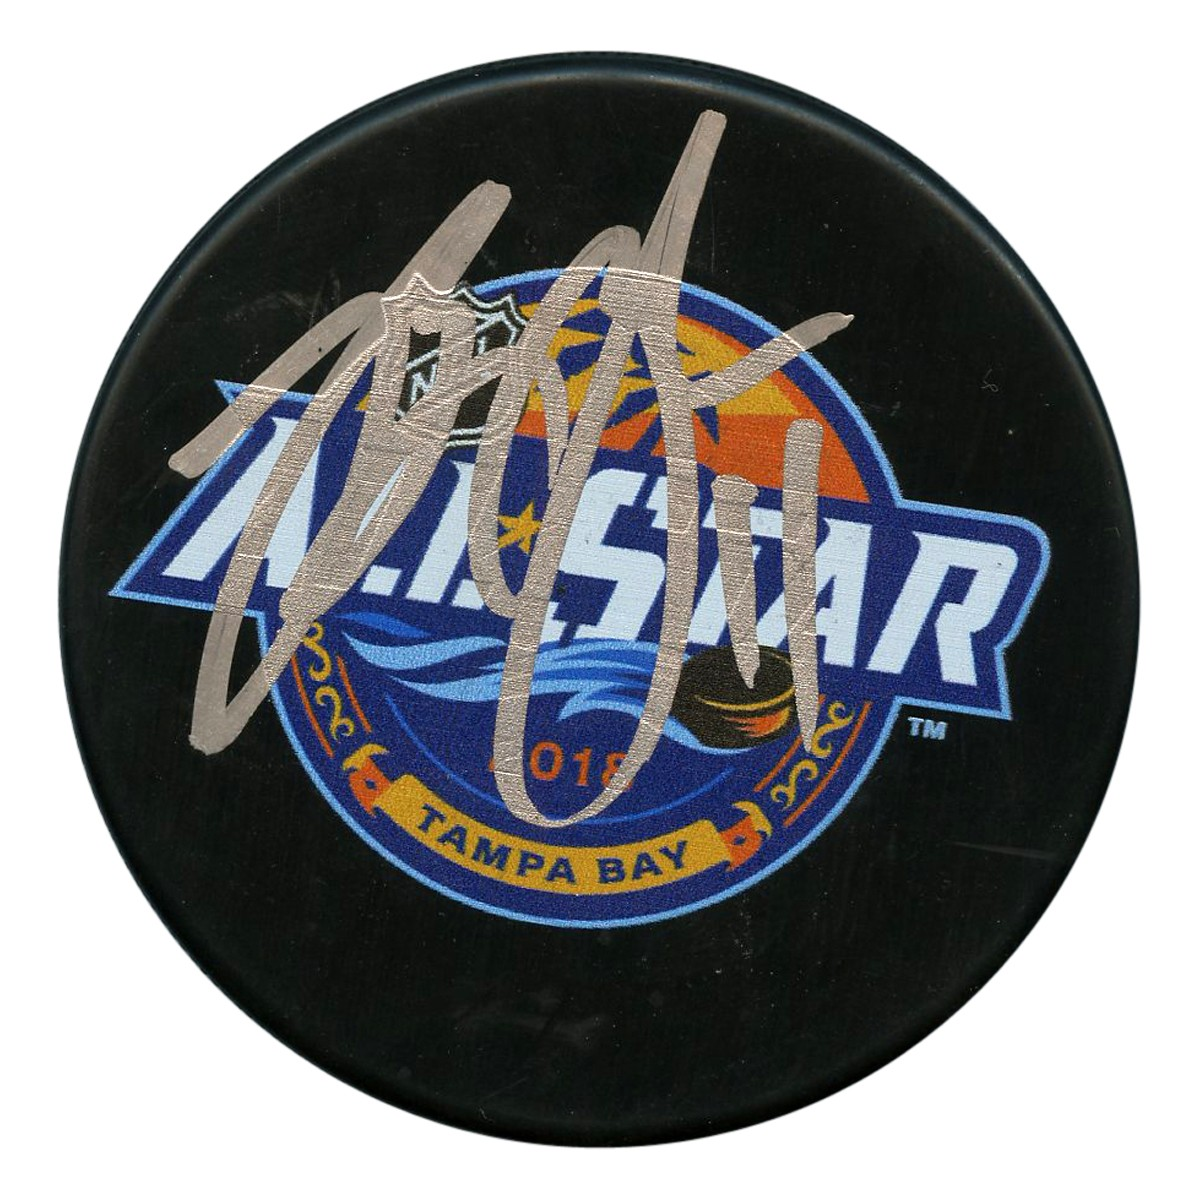 Brian Boyle Autographed Signed 2018 NHL All Star Game Puck - JSA Authentic 4f0cae5ba